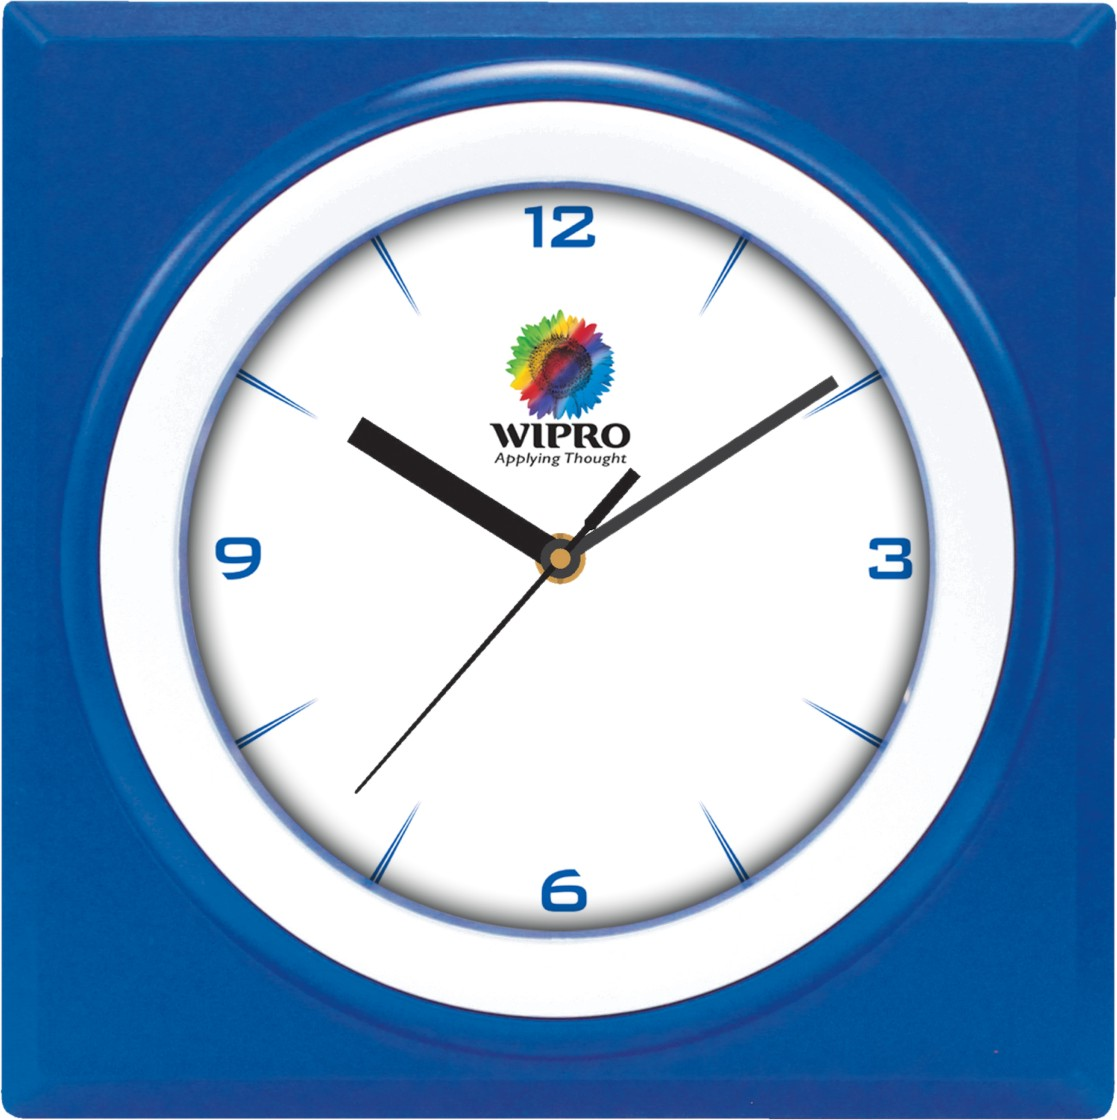 Wipro Wall Clock